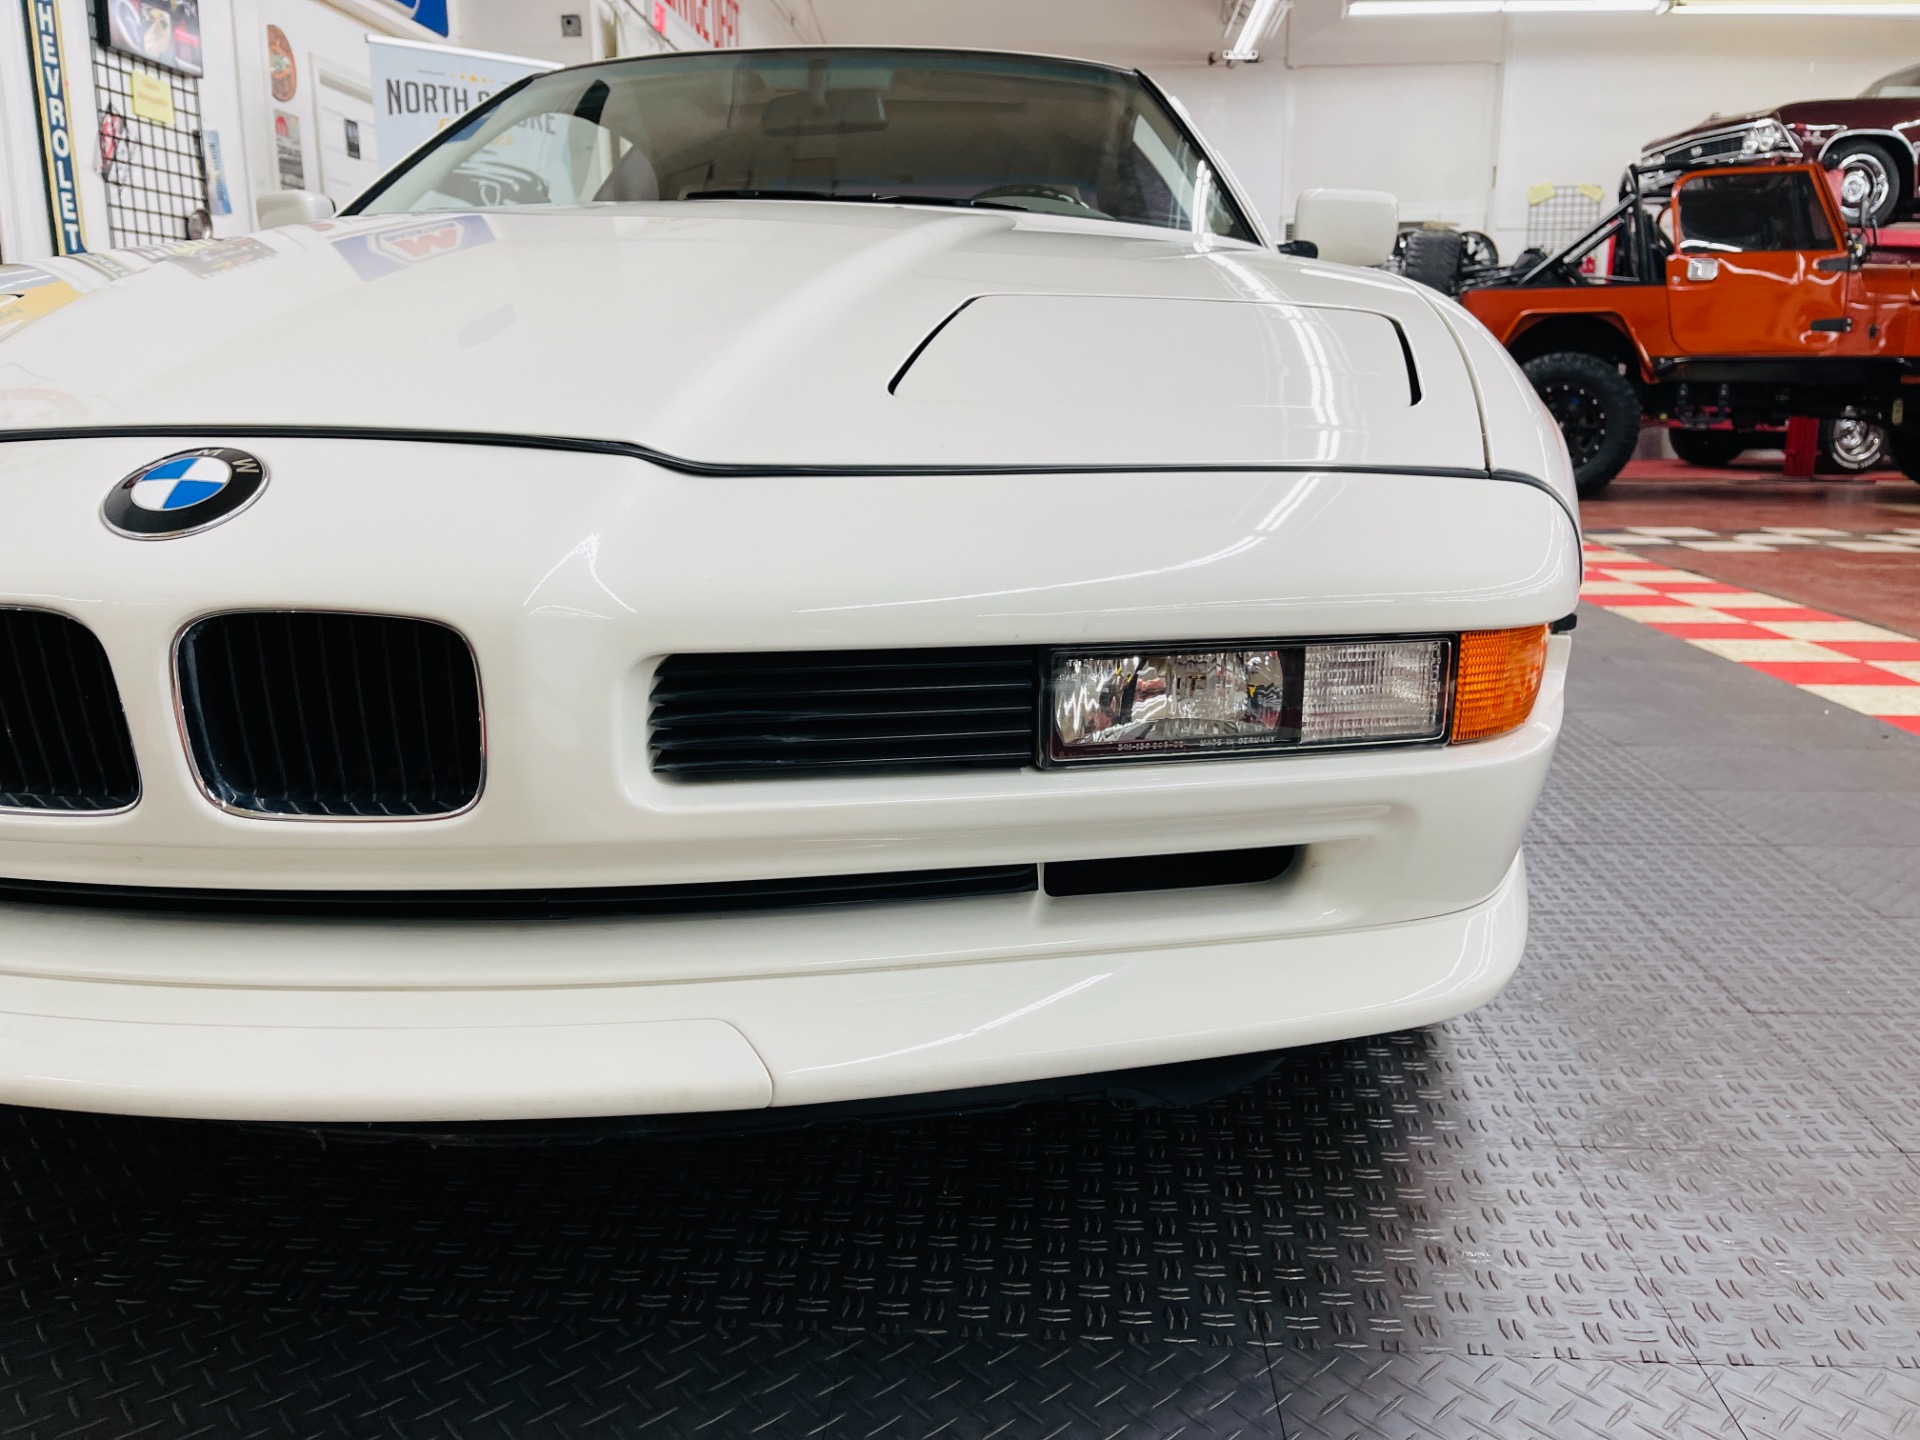 Used 1993 BMW 850 CI -VERY CLEAN CAR - SUPER LOW MILES - SEE VIDEO - | Mundelein, IL